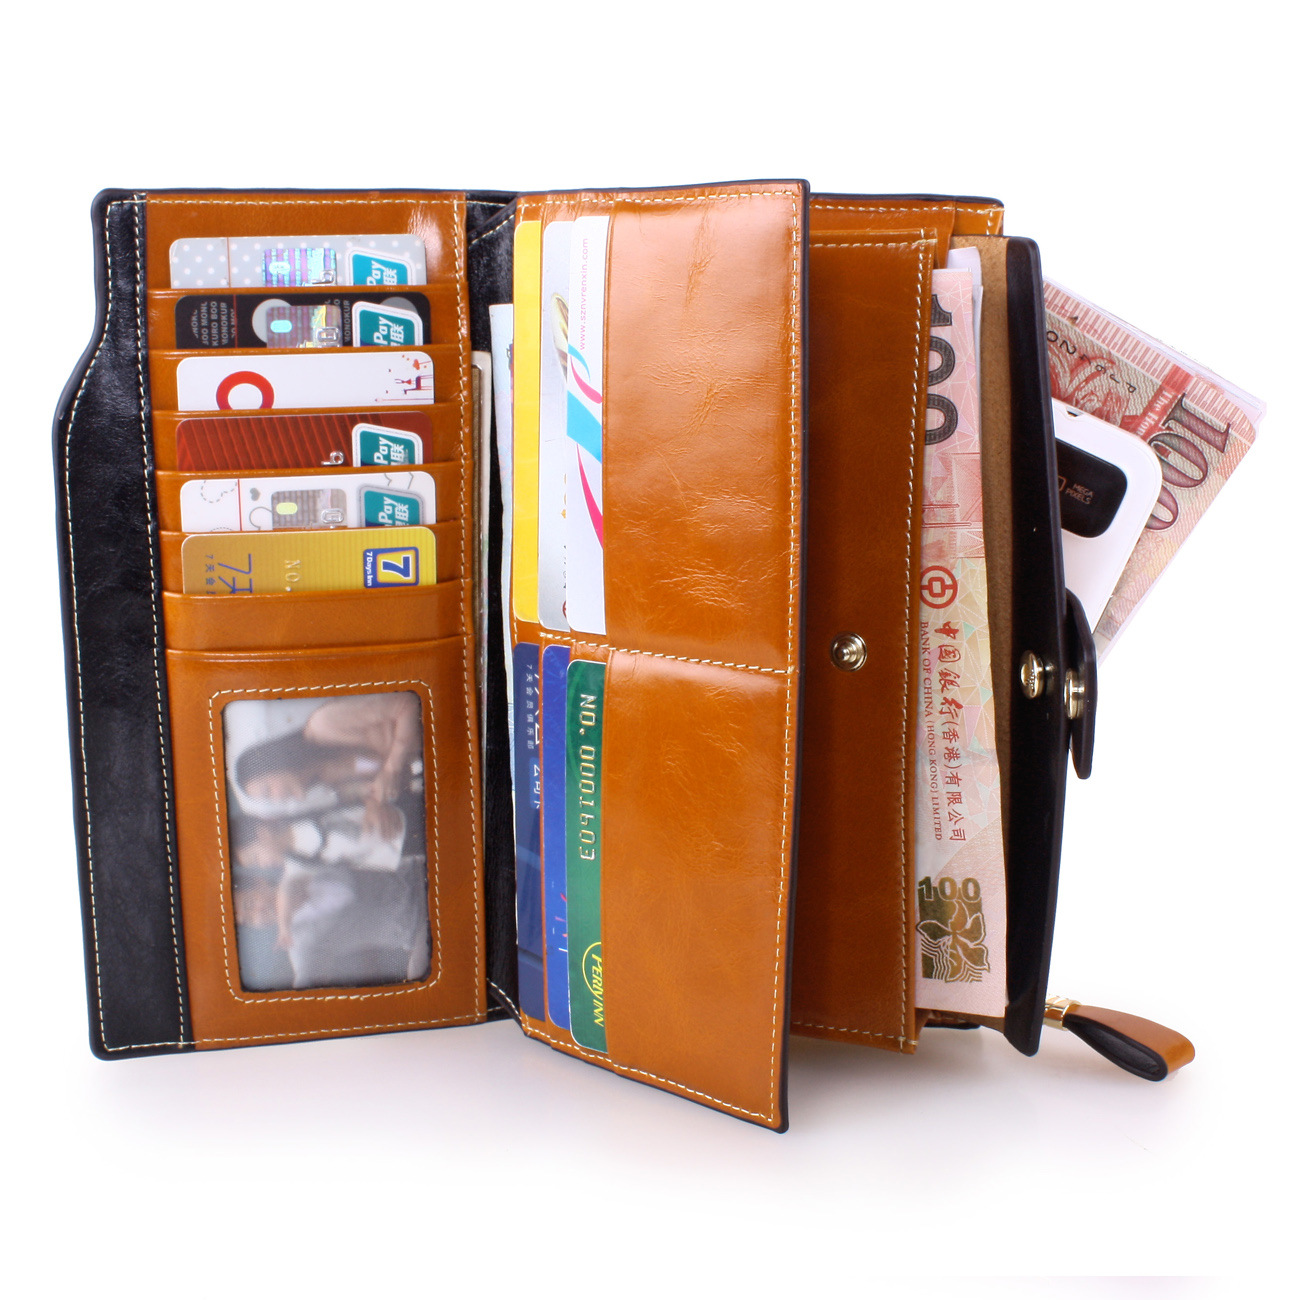 Real leather Money Clips Cardholder wallet 3 folds Spot women 's men long Oil wax  multi   card bag Designer free drop ship-in Money Clips from Luggage & Bags    1